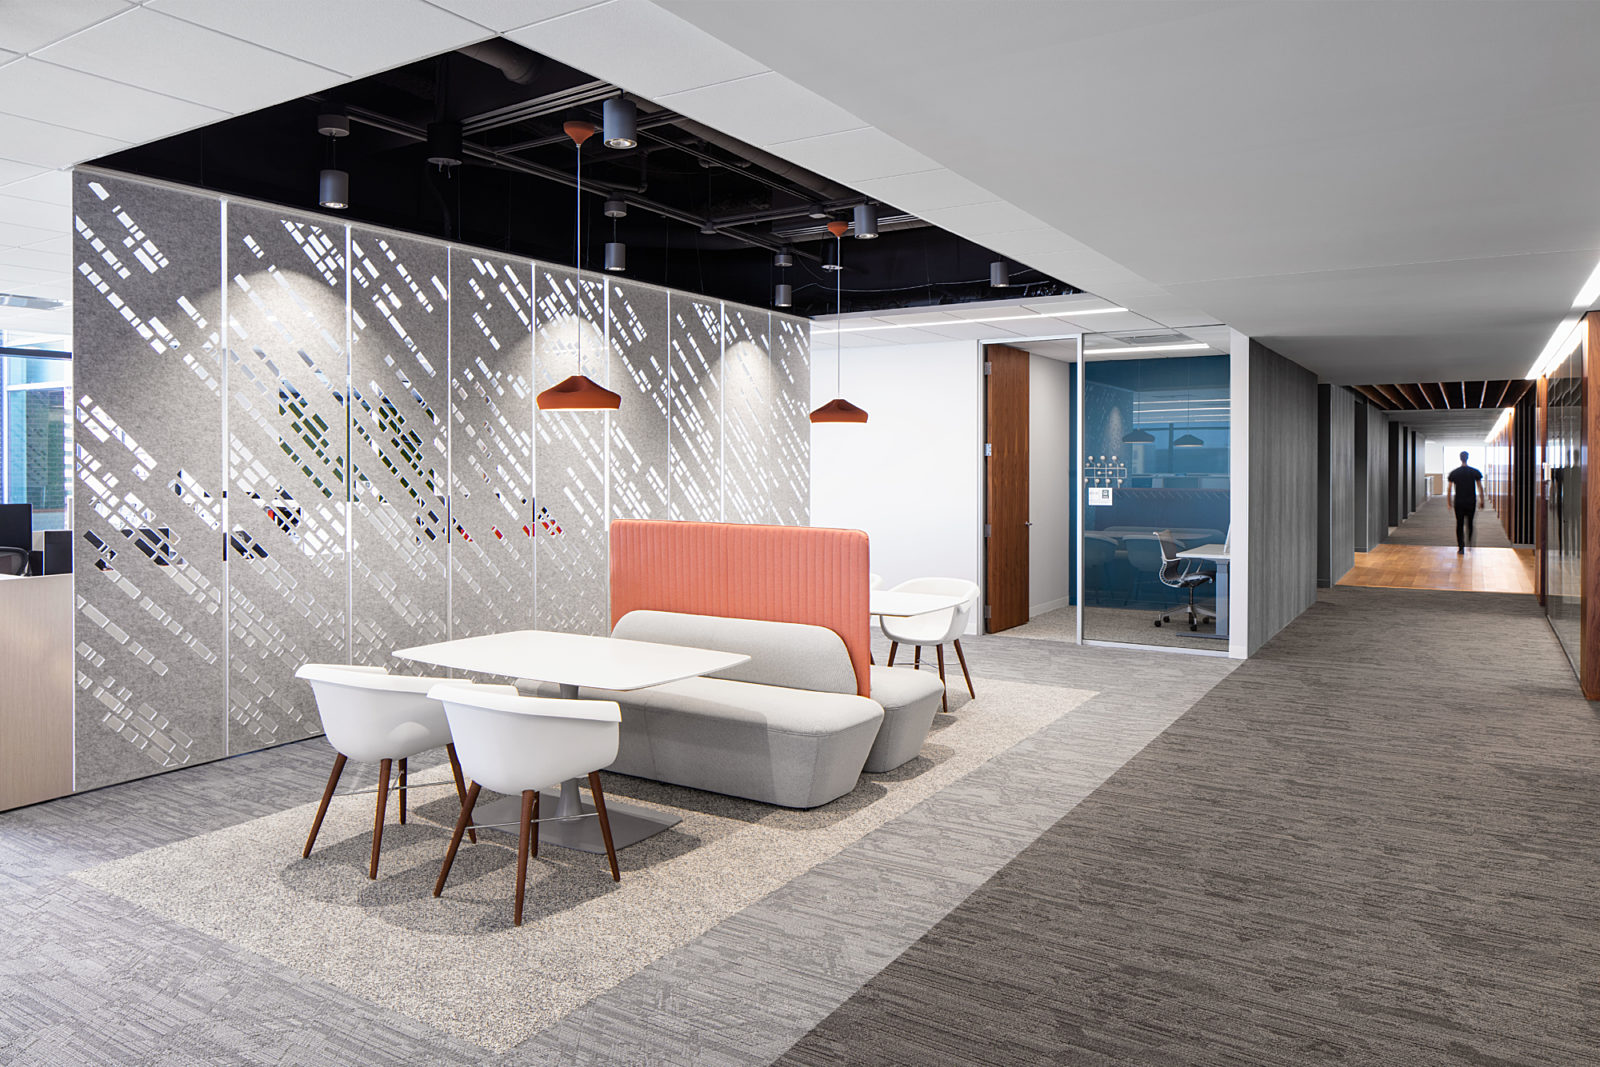 Modern office with booth seating. Acoustical tiles and room divider. Hallway leading to conference room.